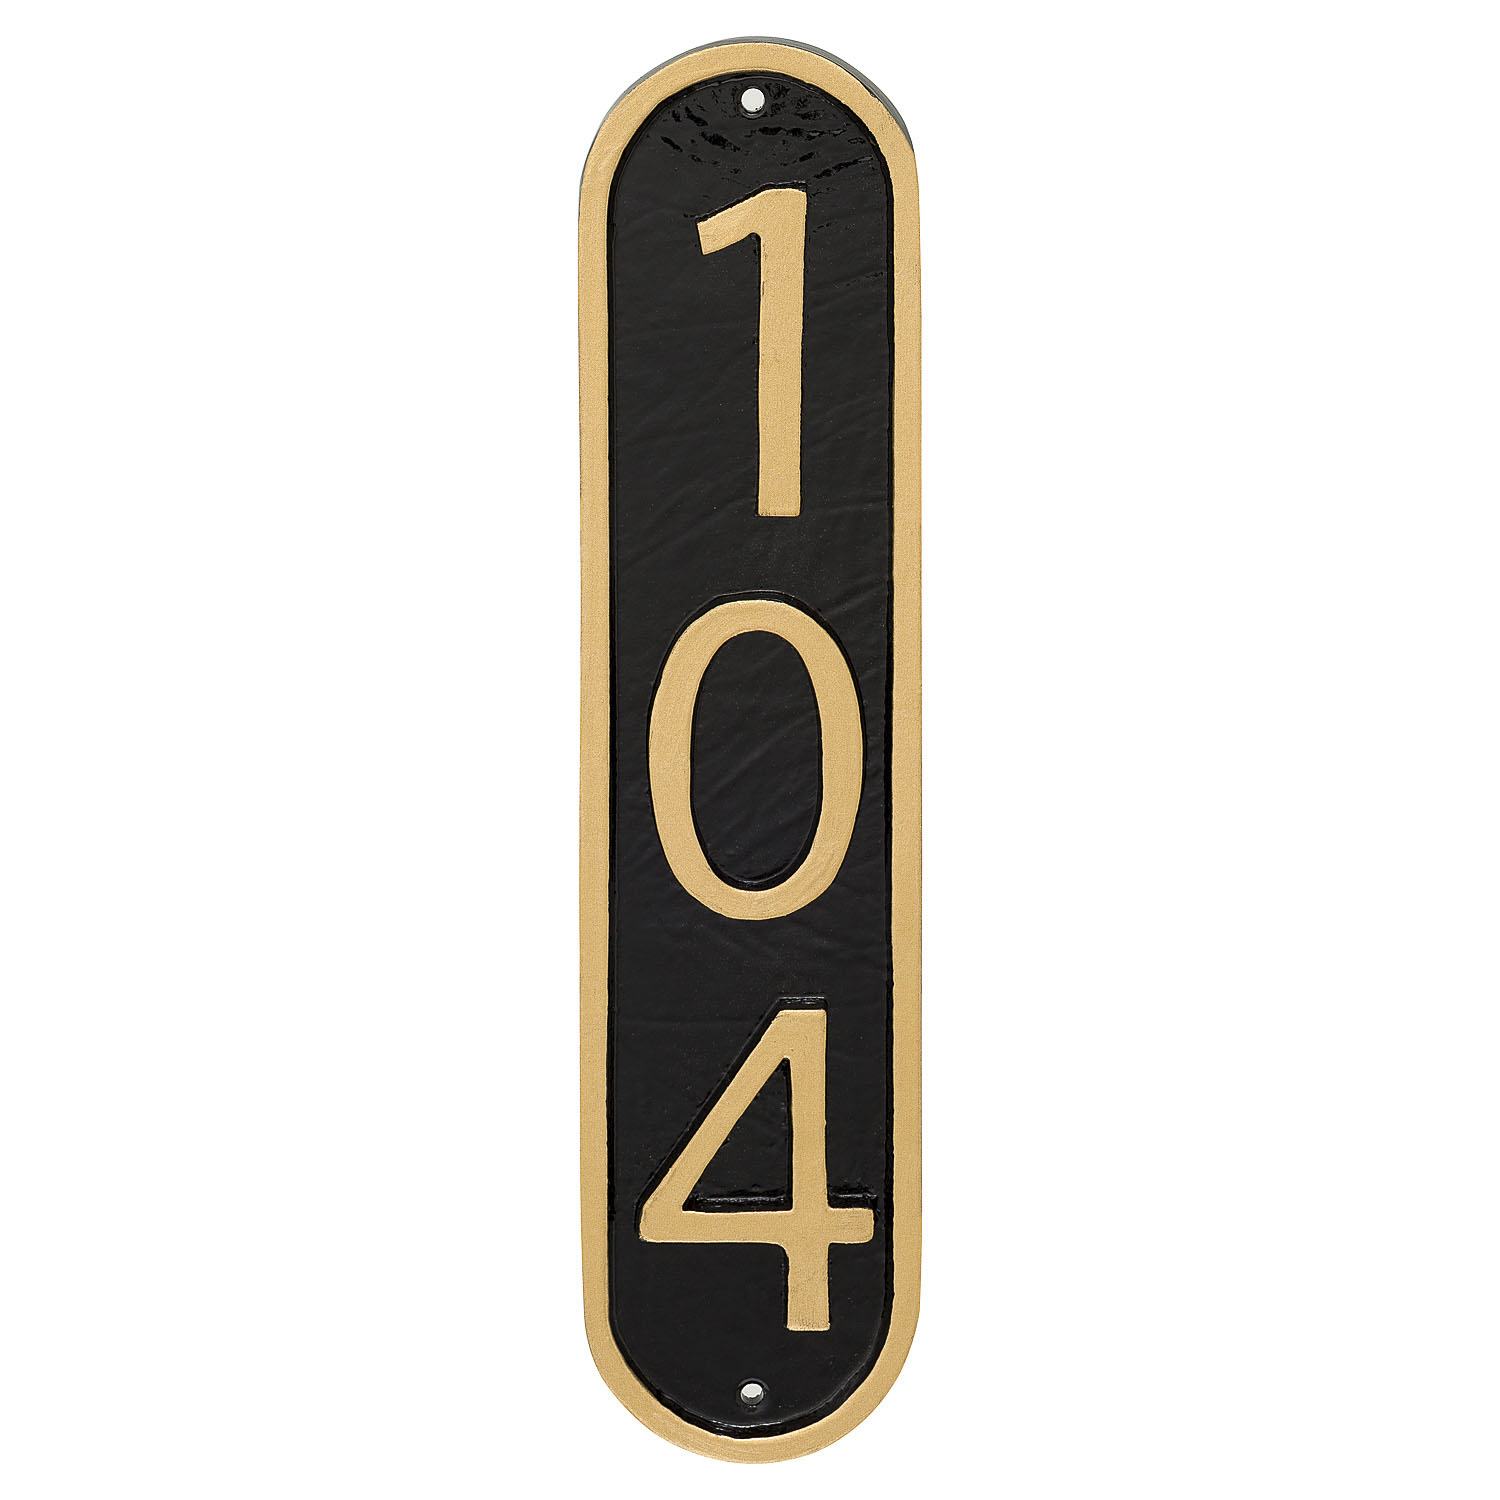 Modern Vertical Economy Address Plaque (holds up to 3 characters)